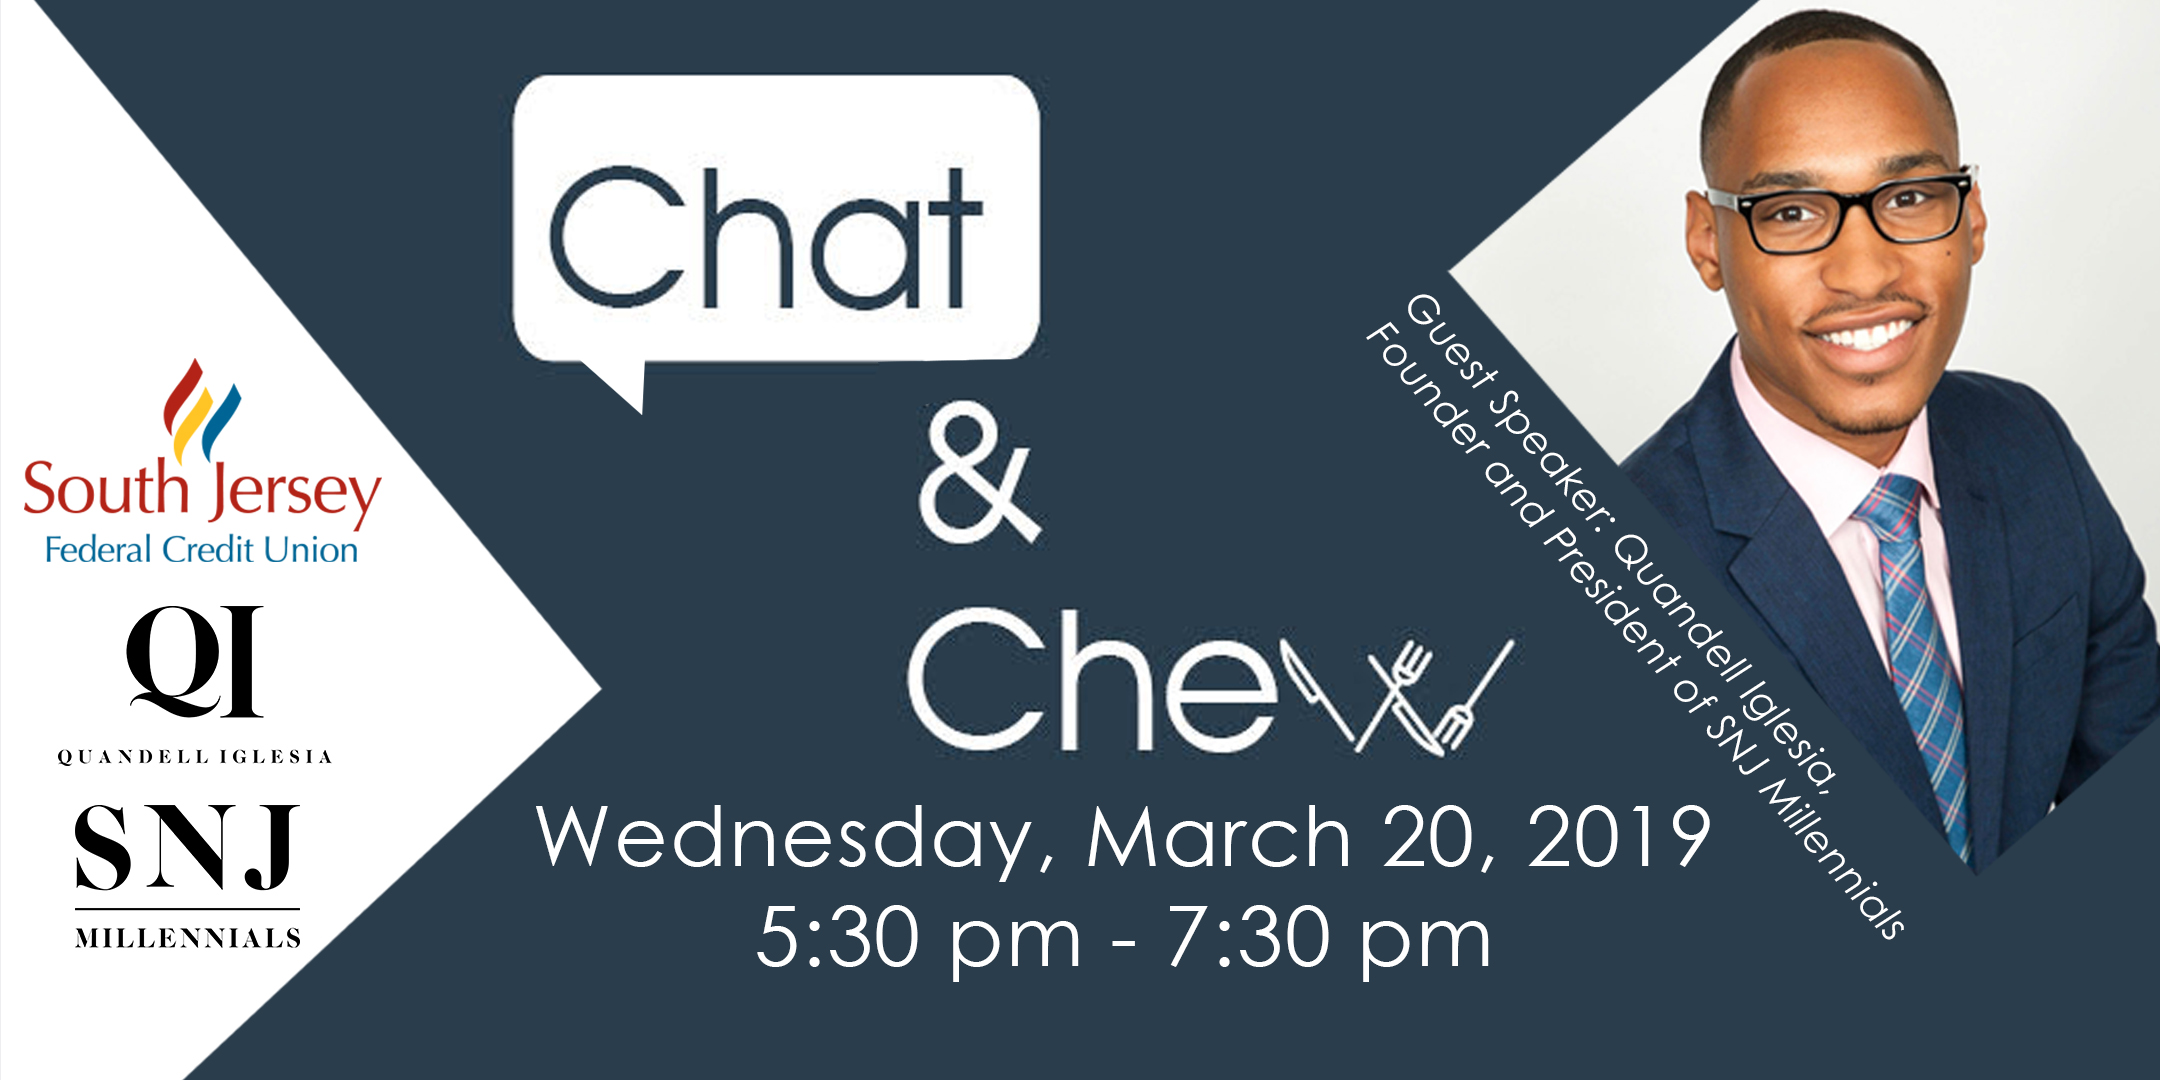 Chat & Chew - Cover.JPG